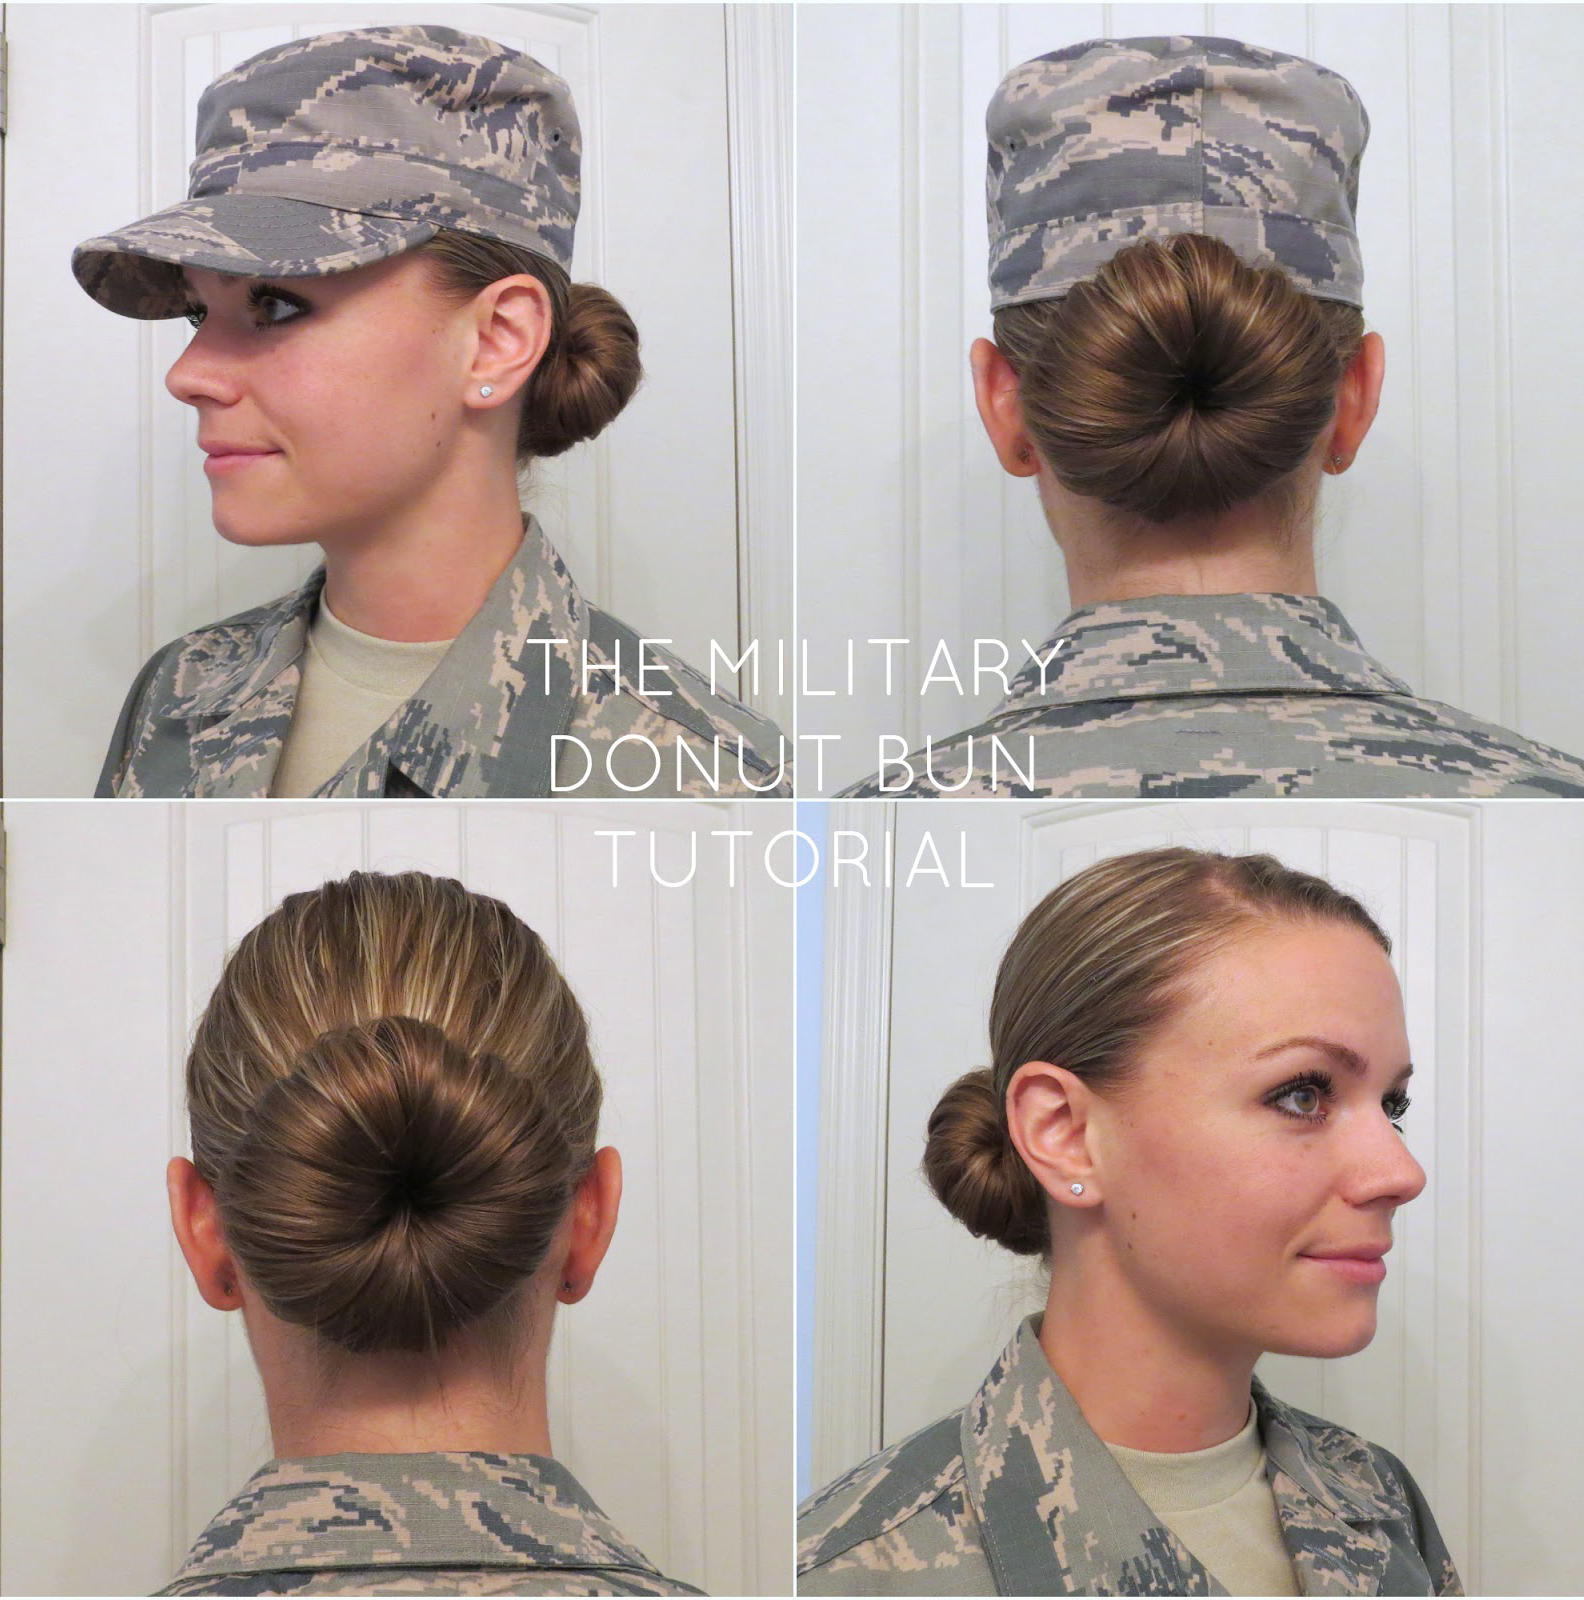 Military Donut Bun Tutorial, Military Sock Bun Tutorial, Quick Sock Bun Tutorial